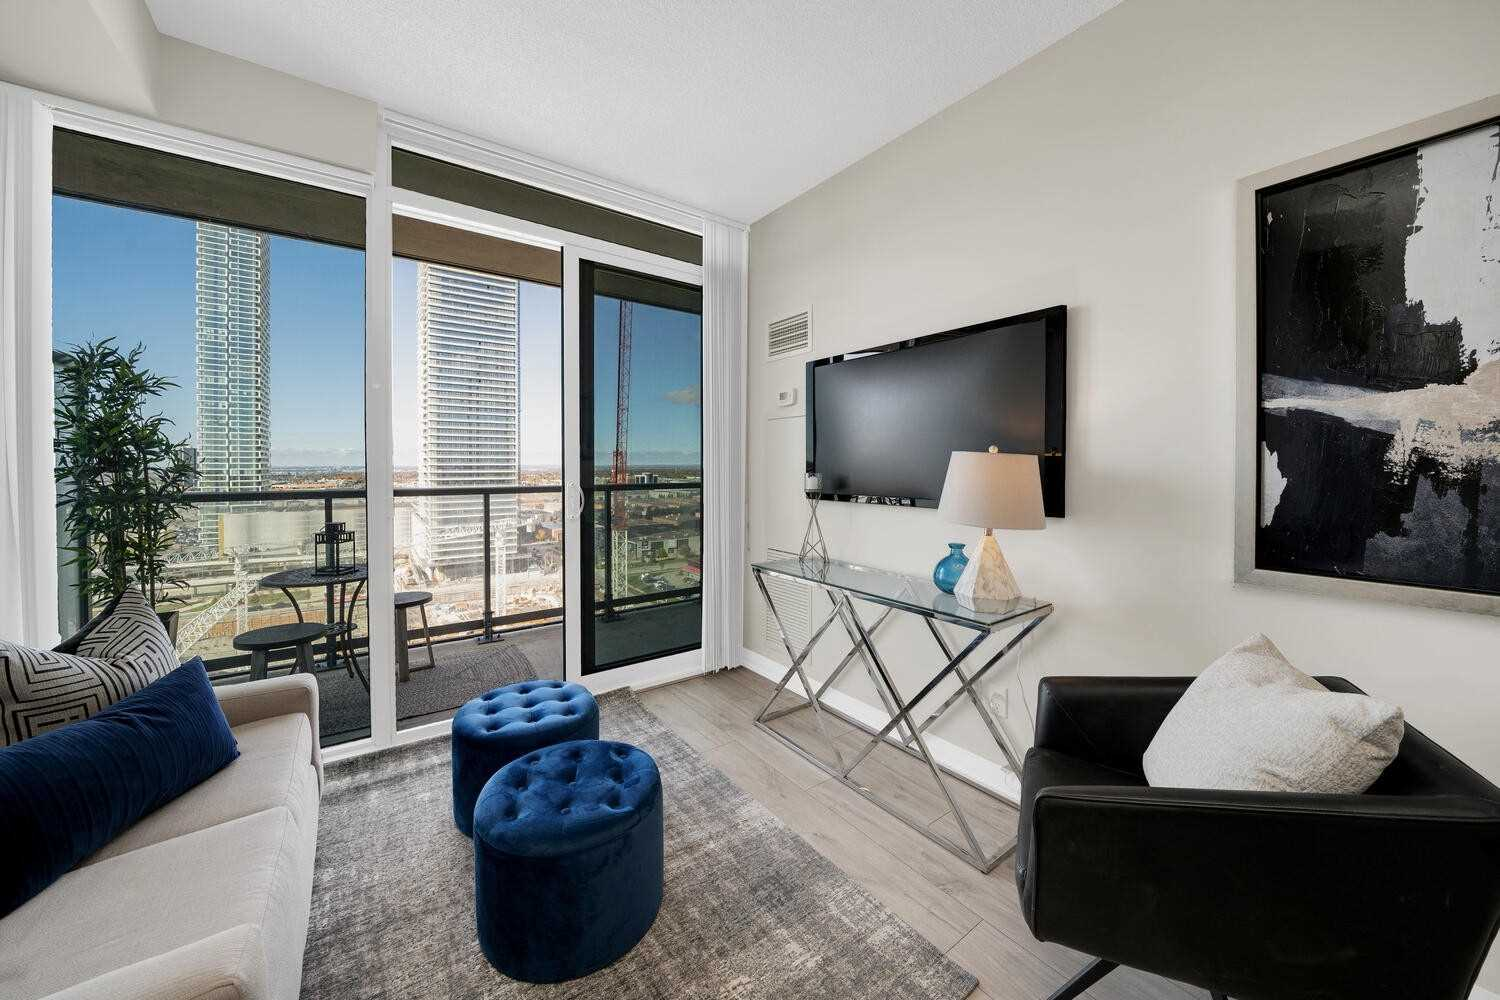 For Sale: 1709 - 7895 Jane Street, Vaughan, ON | 1 Bed, 1 Bath Condo for $379999.00. See 21 photos!